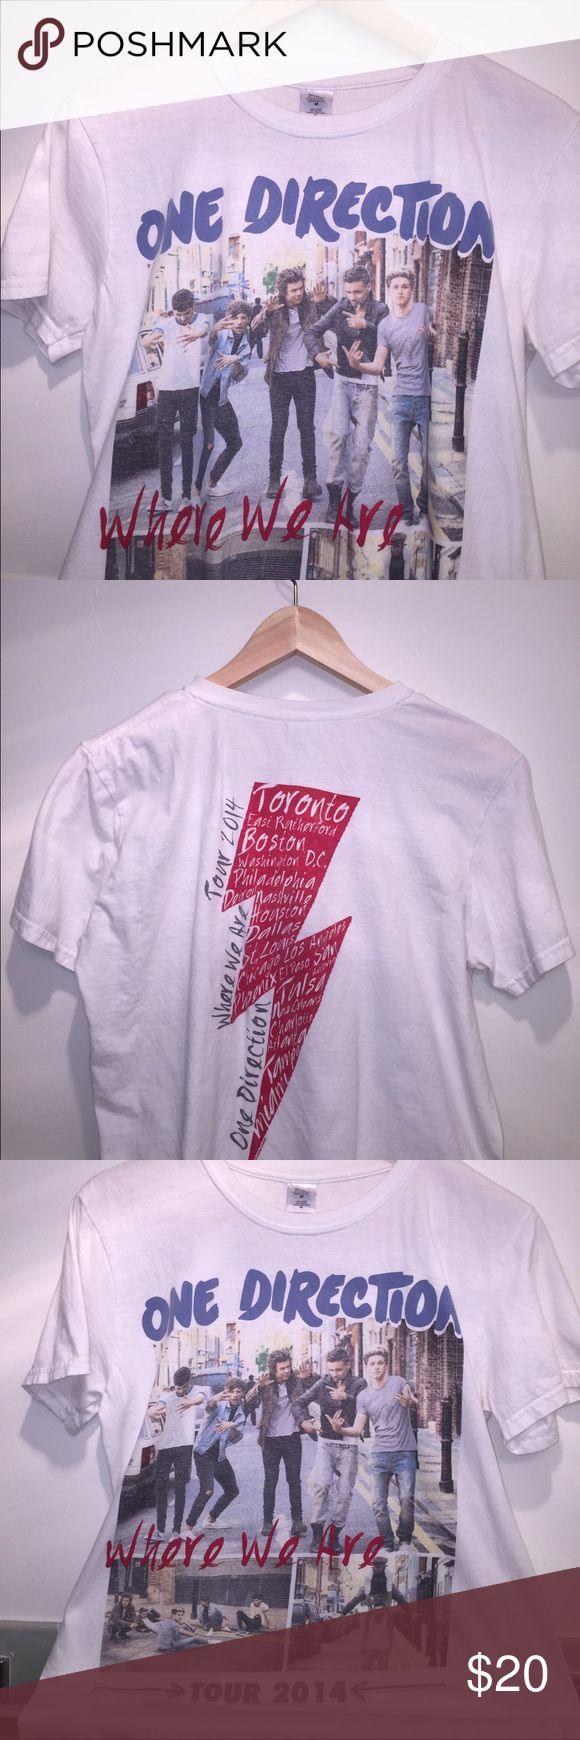 One Direction Where We Are Tour 2014 Shirt One Direction is gone (for now...) but never forgotten with this shirt complete with all five boys! Reminisce on the good ol' days back when life was simple and easy. The 2014 Where We Are Tour. Arguably the best tour... The shirt itself is in extremely good condition with no stains, rips, or anything, it's genuinely good as new. Listen to old 1D songs and cry in it. A good time guaranteed One Direction Tops Tees - Short Sleeve